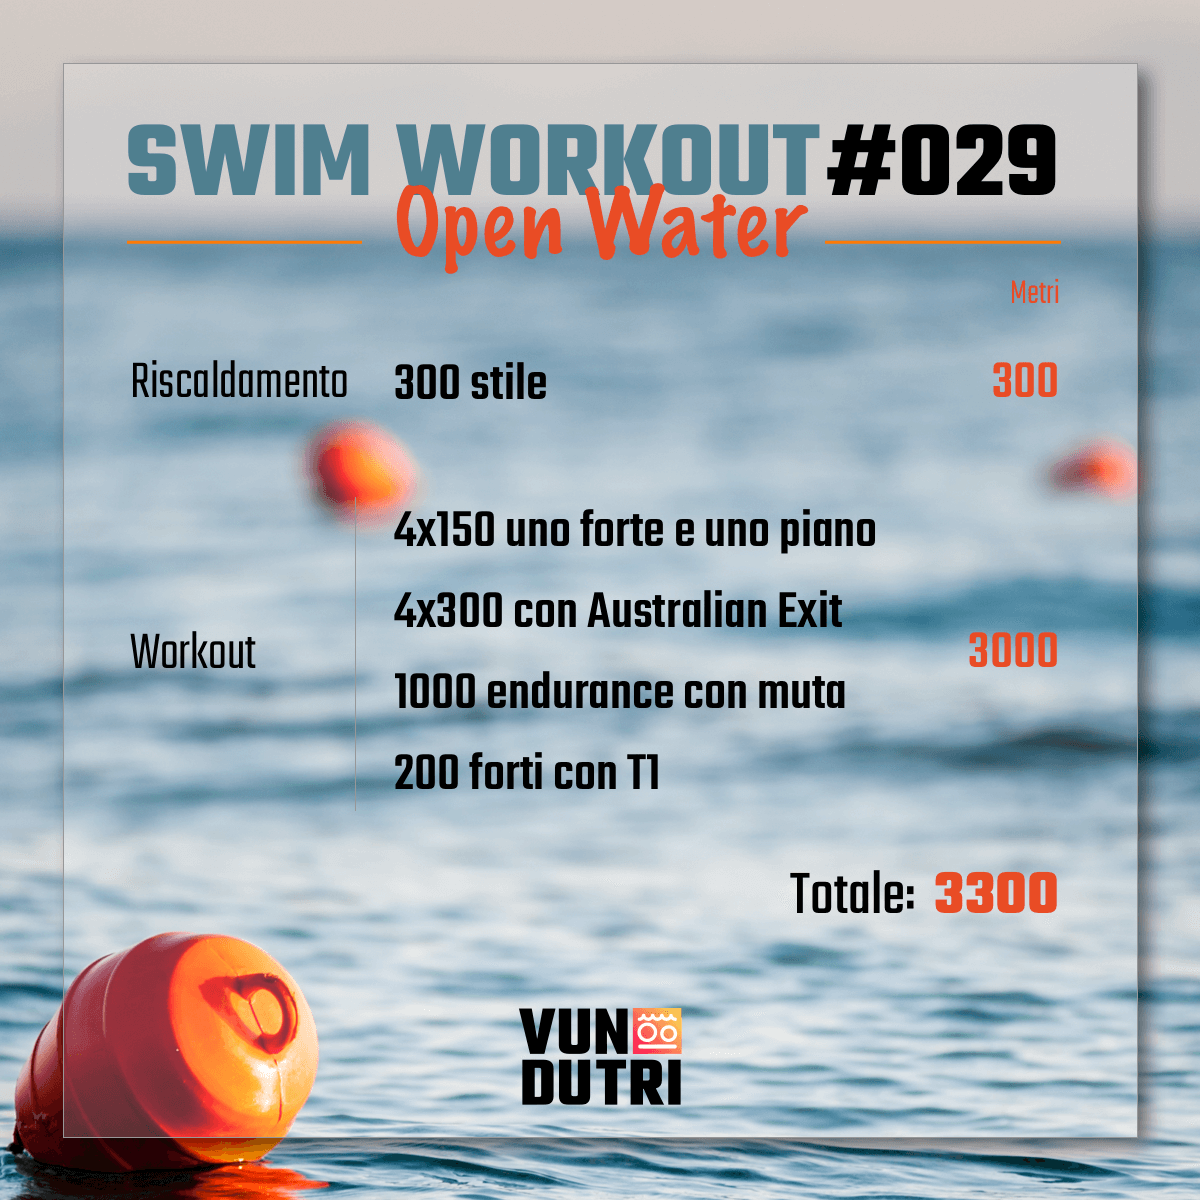 Swim workout 029 - Open Water